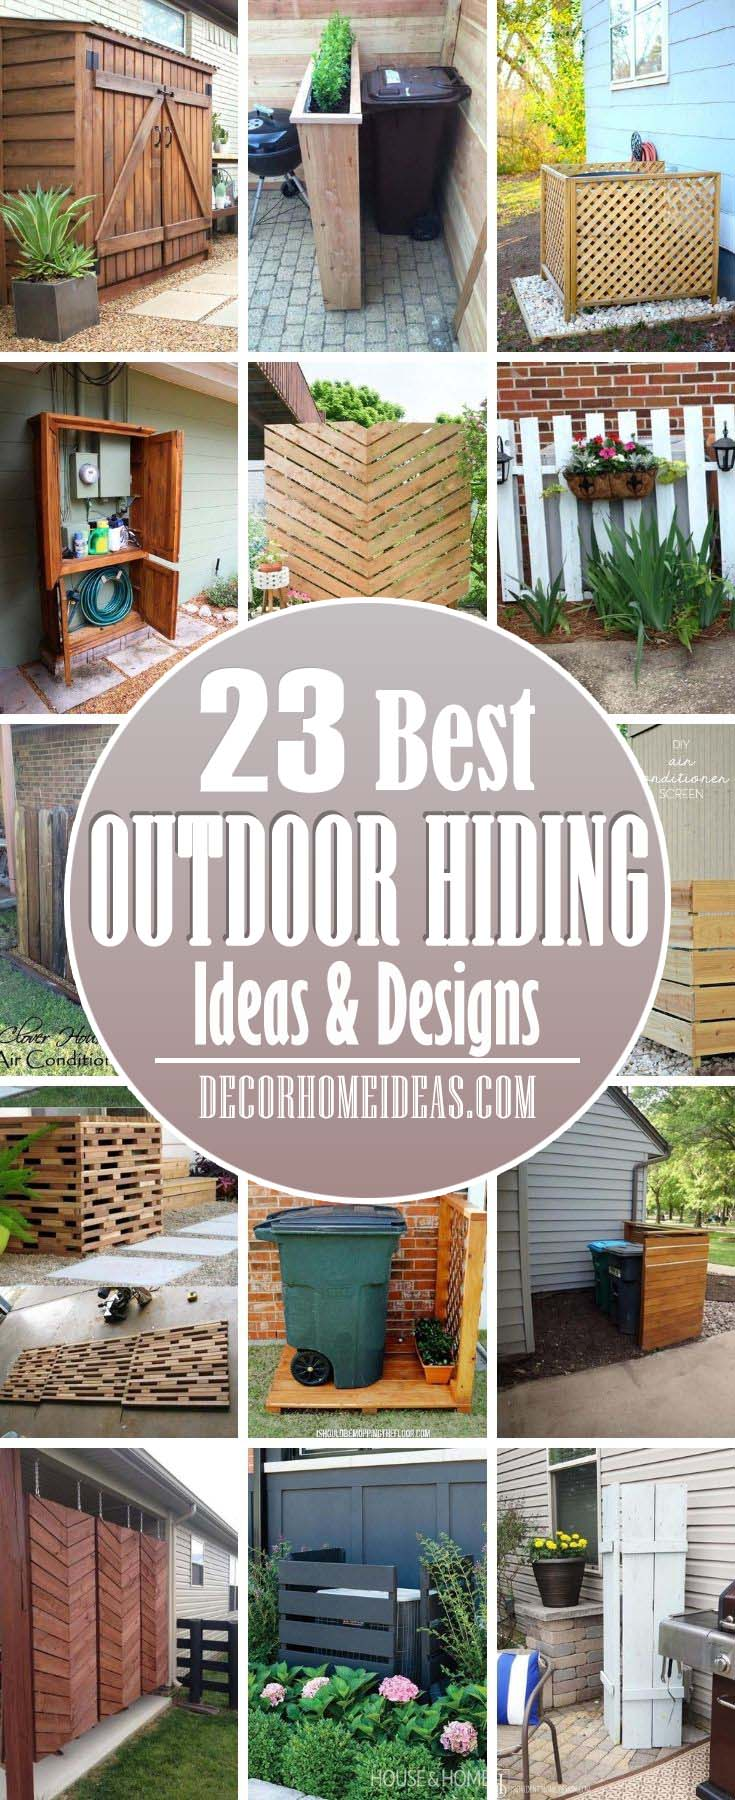 Best Outdoor Hiding Ideas. Check out these tips and tricks to hide your junk and make your backyard look organized and pristine. From A/C , utility boxes and pipes, we've got you covered. #decorhomeideas